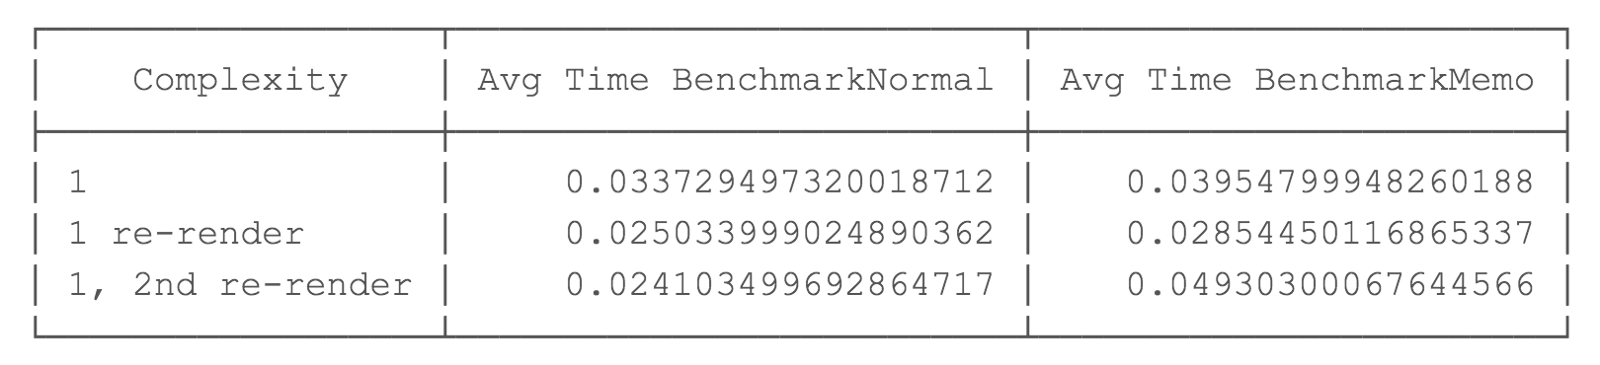 Benchmark results for complexity 1